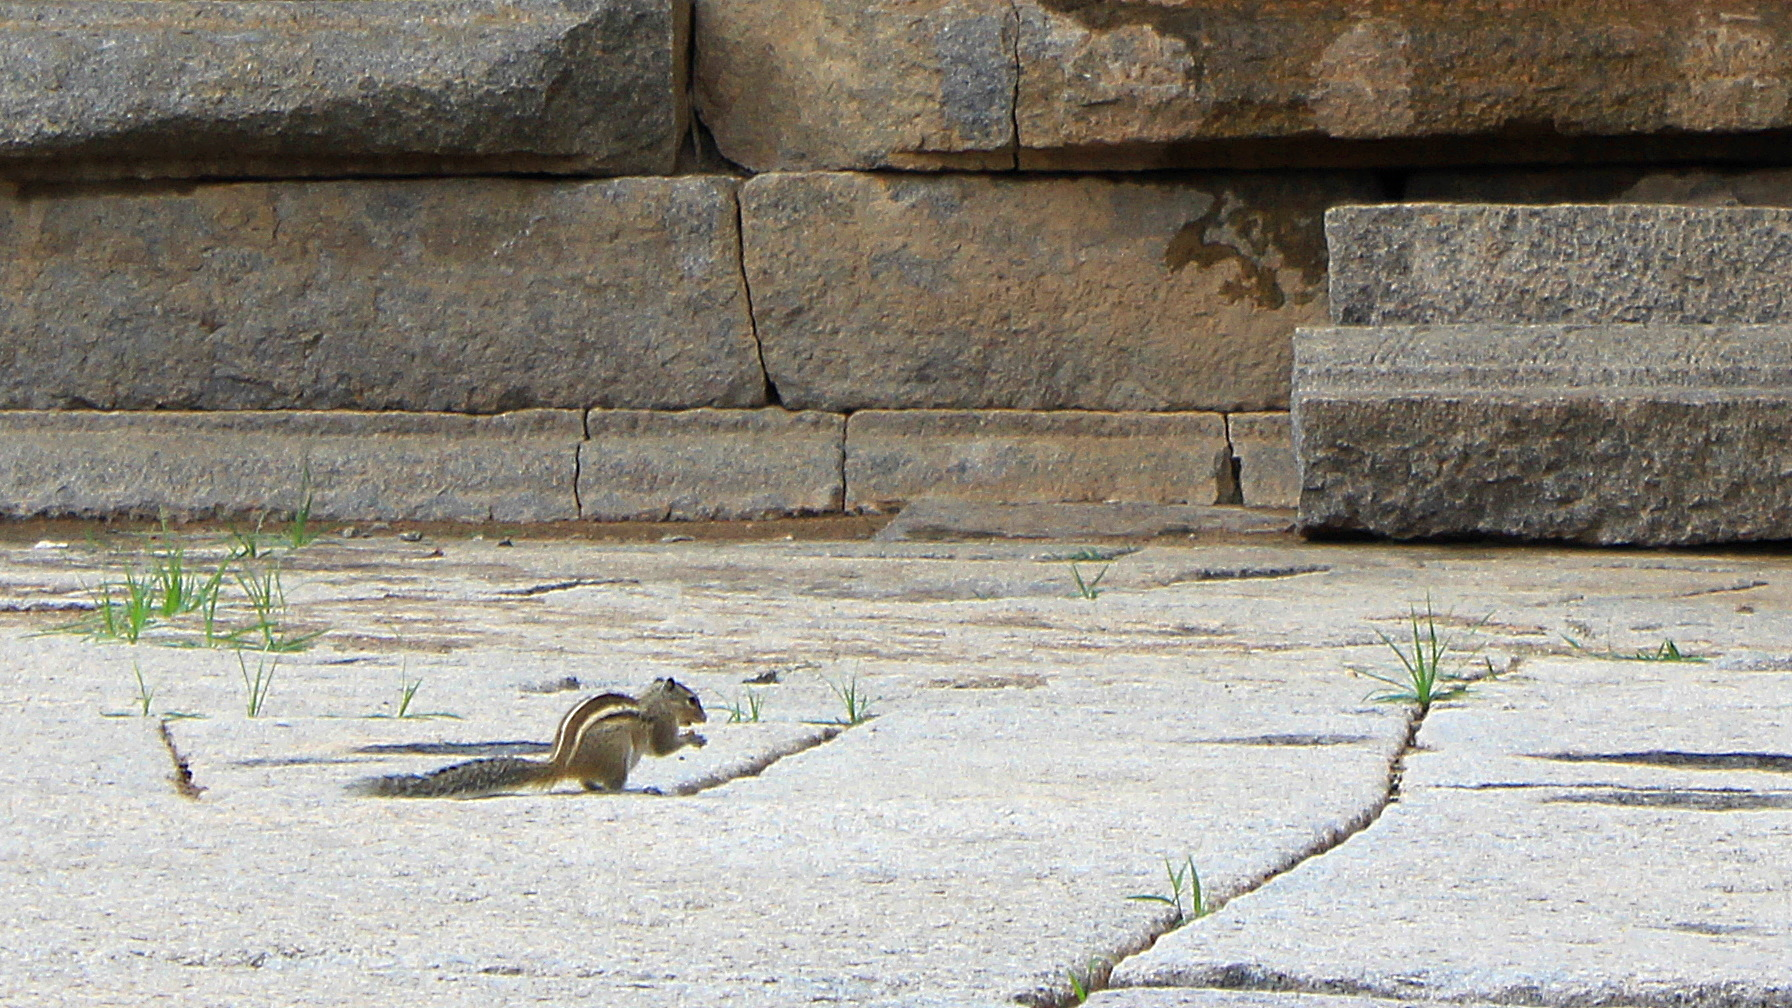 A small Indian squirrel standing on two legs on the stone pavement of a temple.